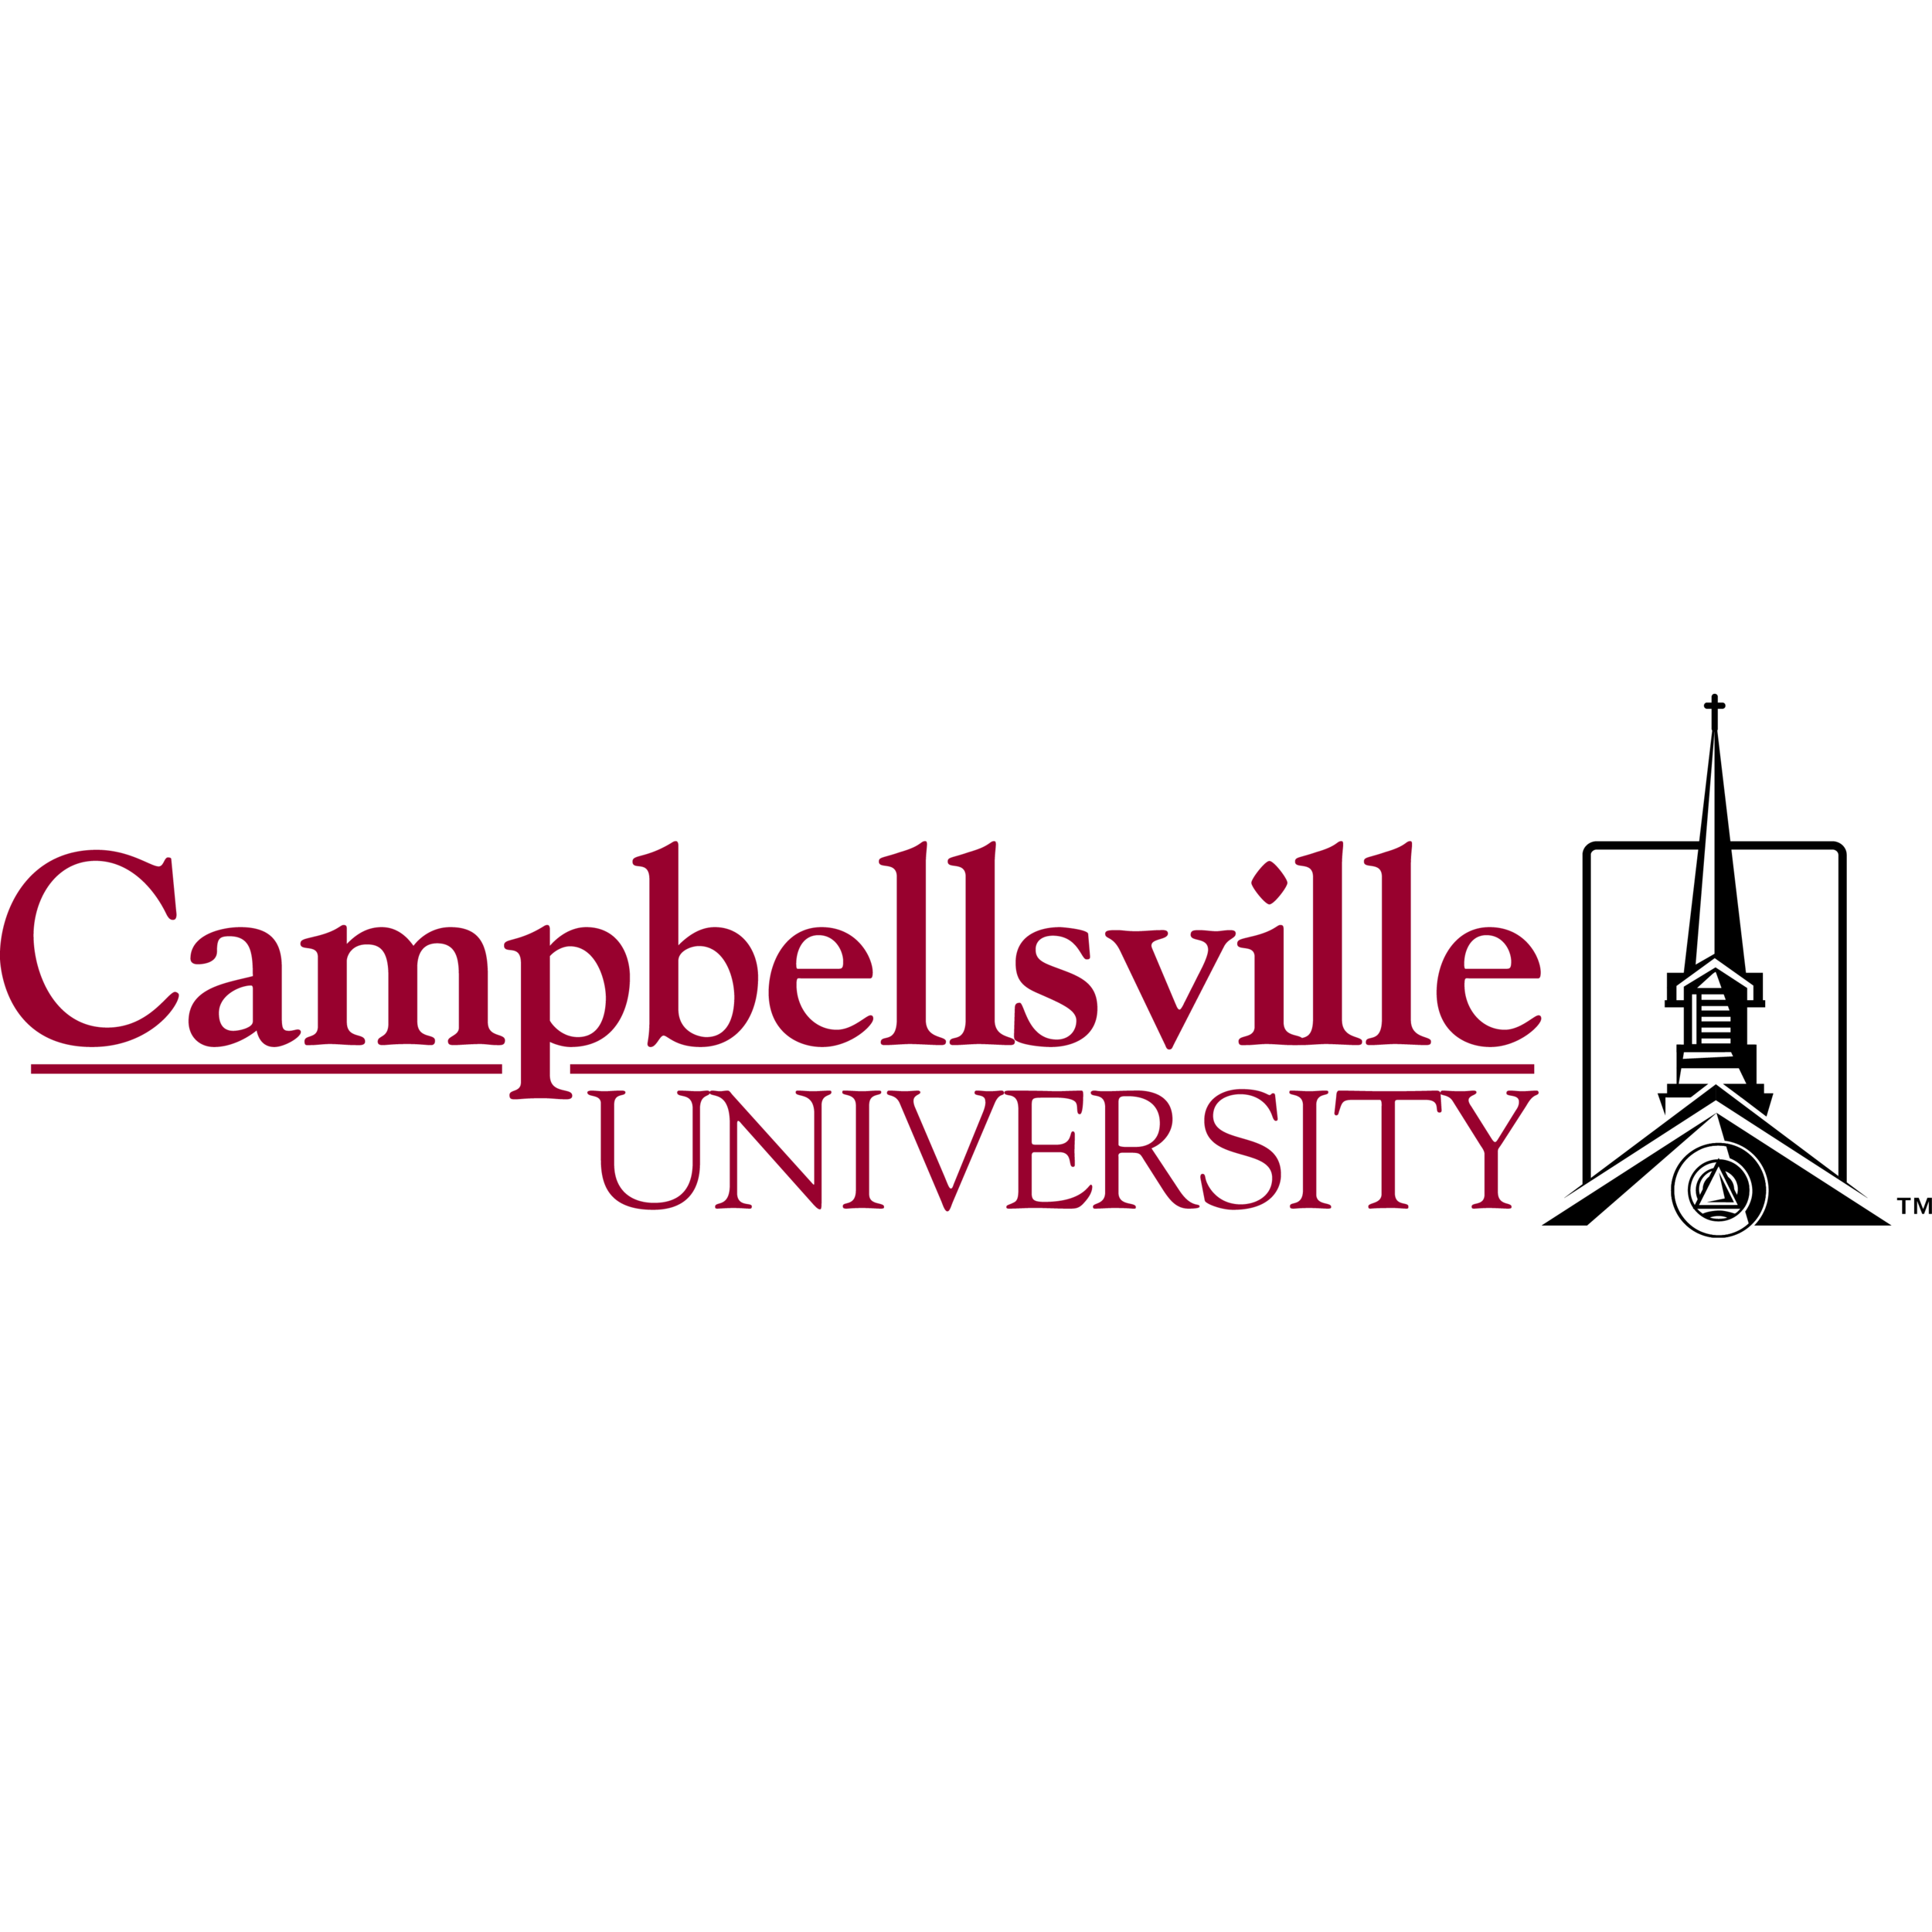 campbellsville single guys Good looking white men are waiting for you right here if you're in campbellsville, afroromance has someone for you here at afroromance we allow you to make an informed decision before upgrading your membership to a level that allows you to speak to other singles.